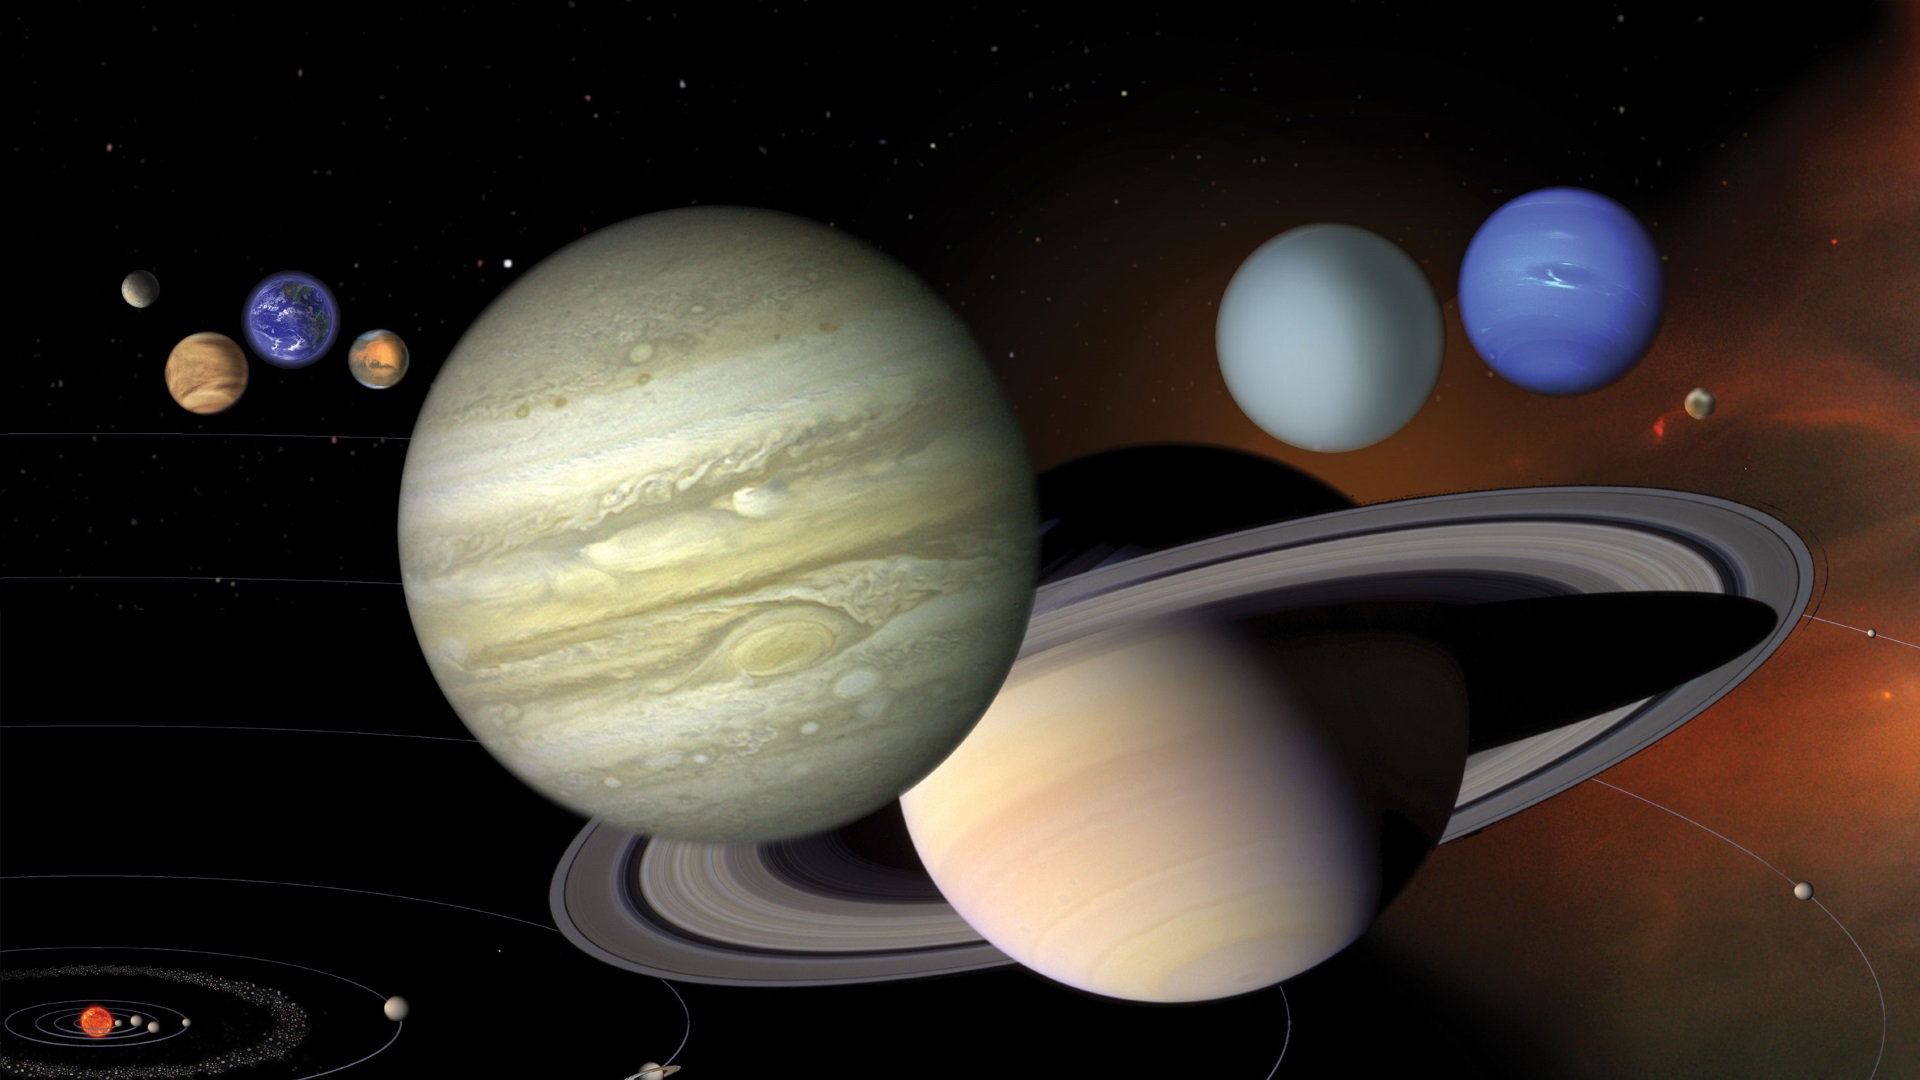 An illustration showing the 8 planets of the Solar System to scale. - Image Credit: NASA